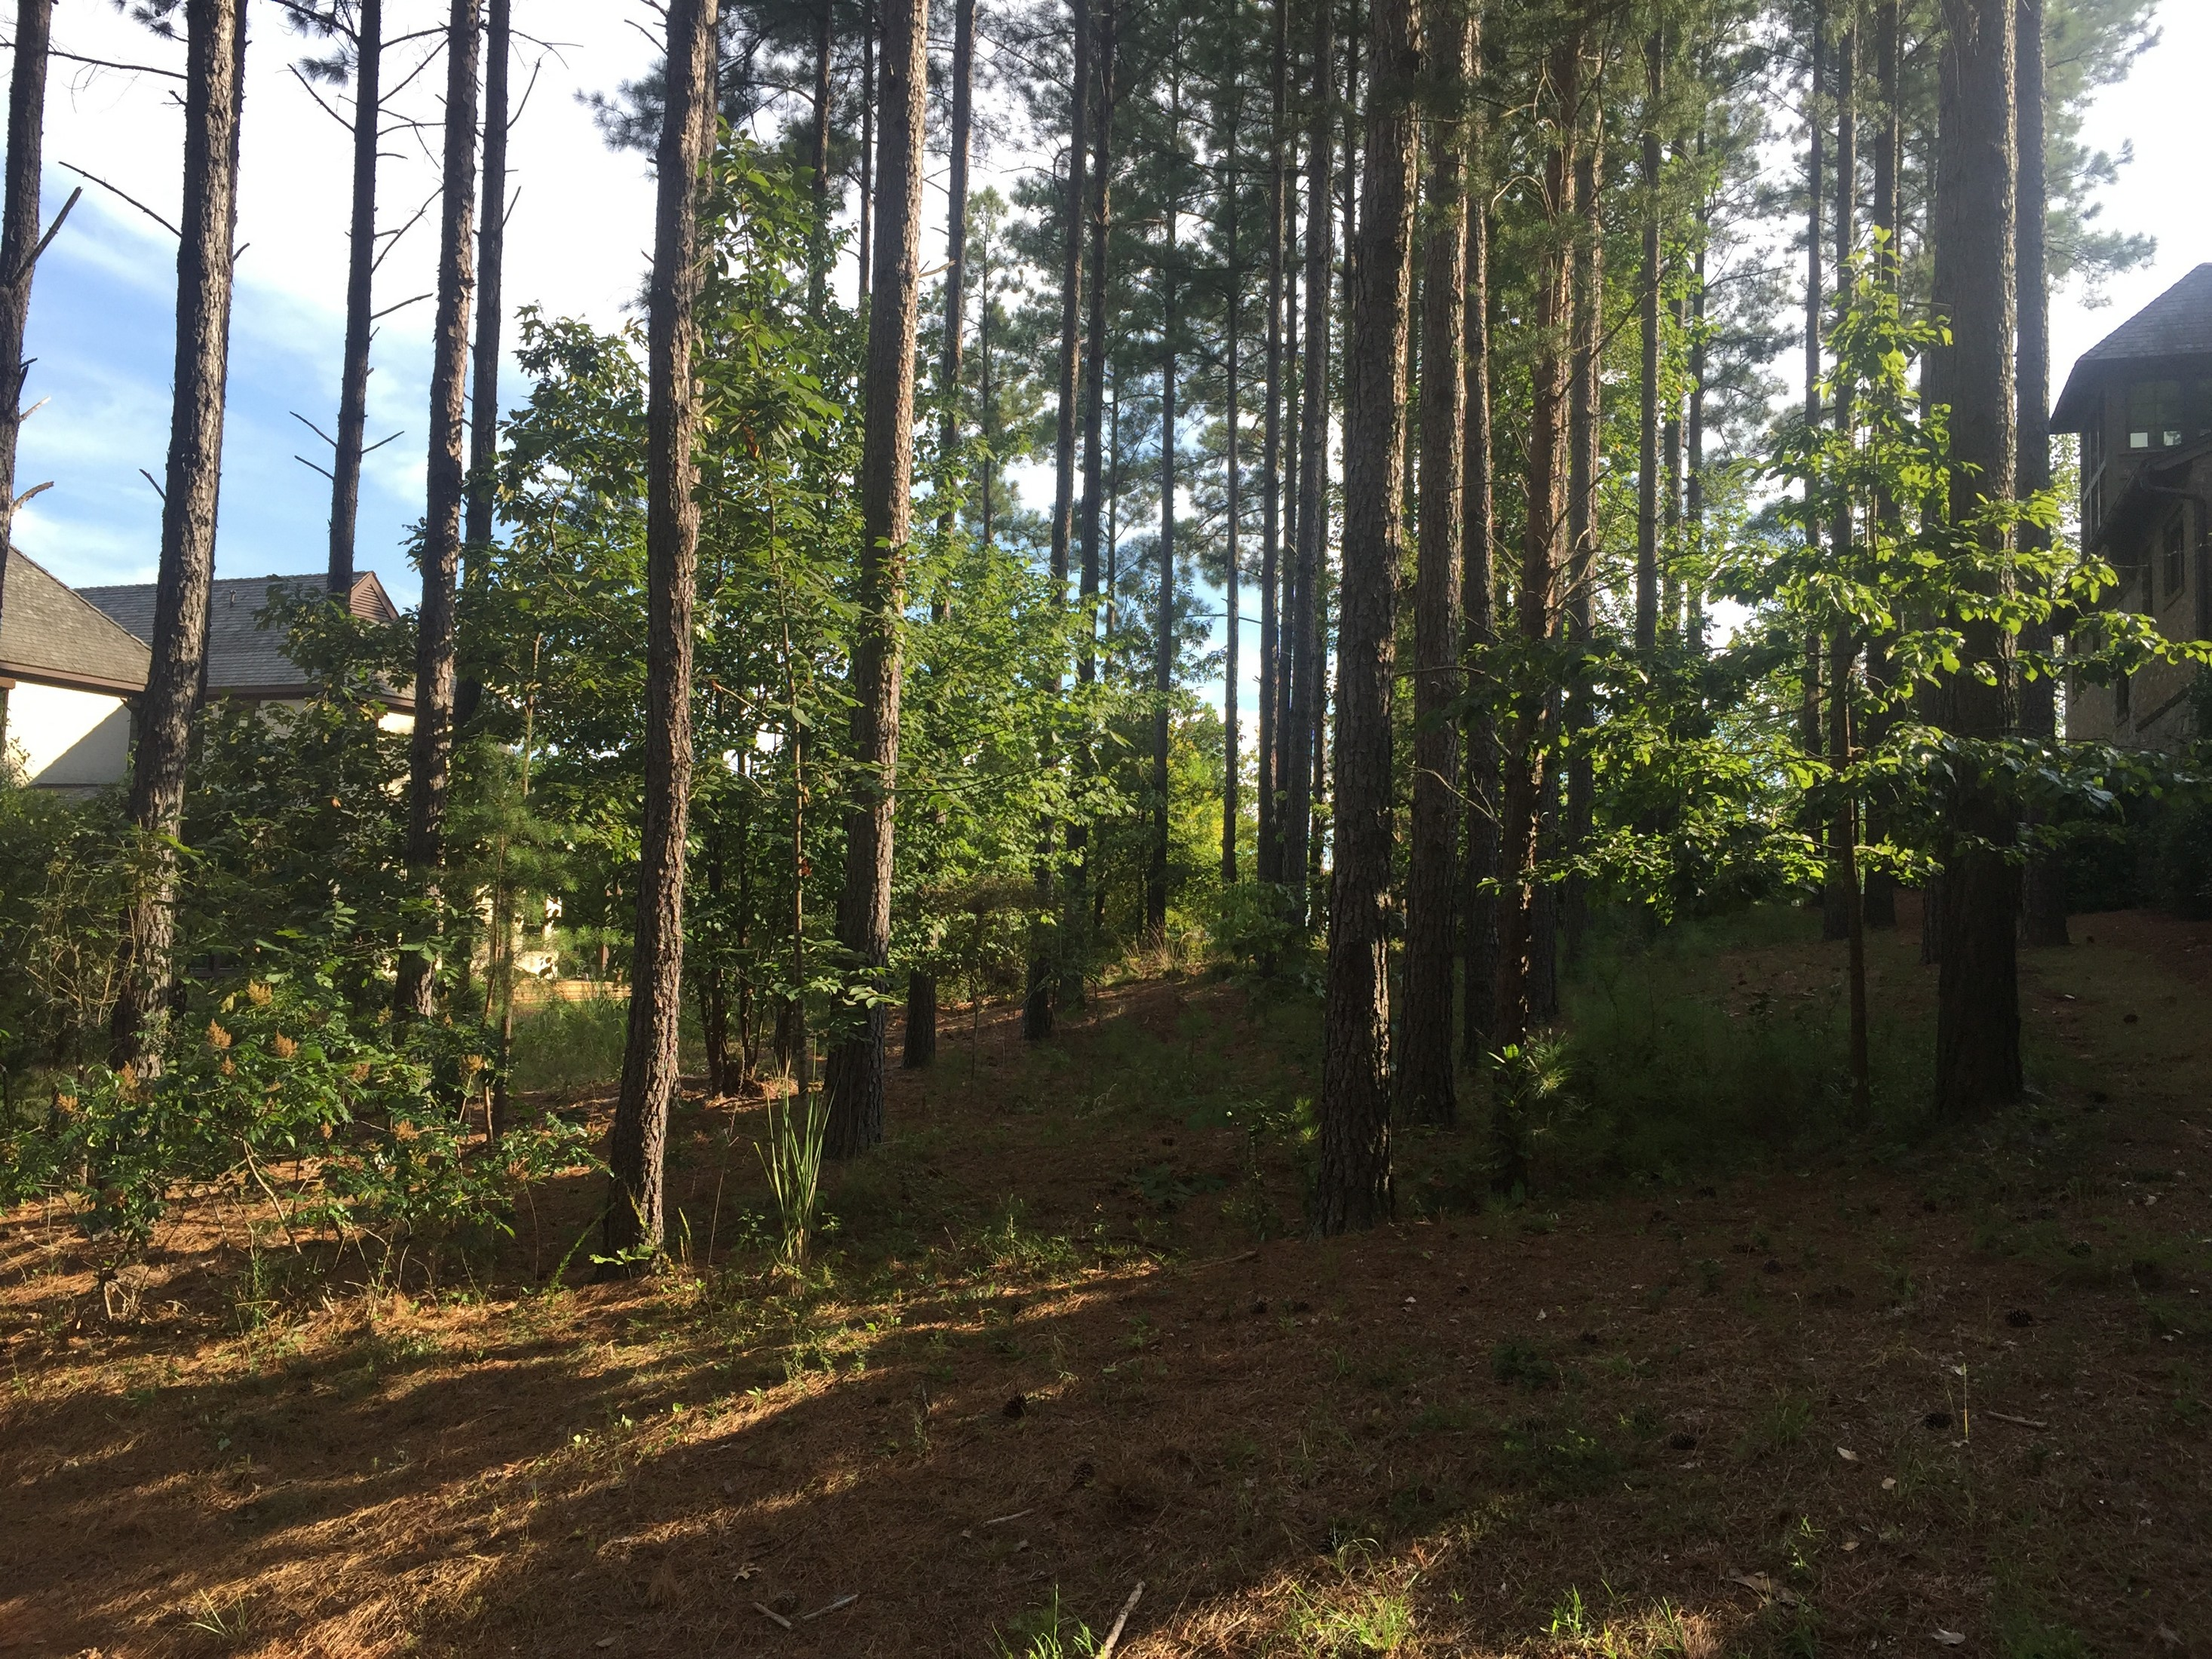 Land for Sale at An Easy Walk From this Home Site to World Class Amenities RES GL5 The Reserve At Lake Keowee, Sunset, South Carolina, 29685 United States